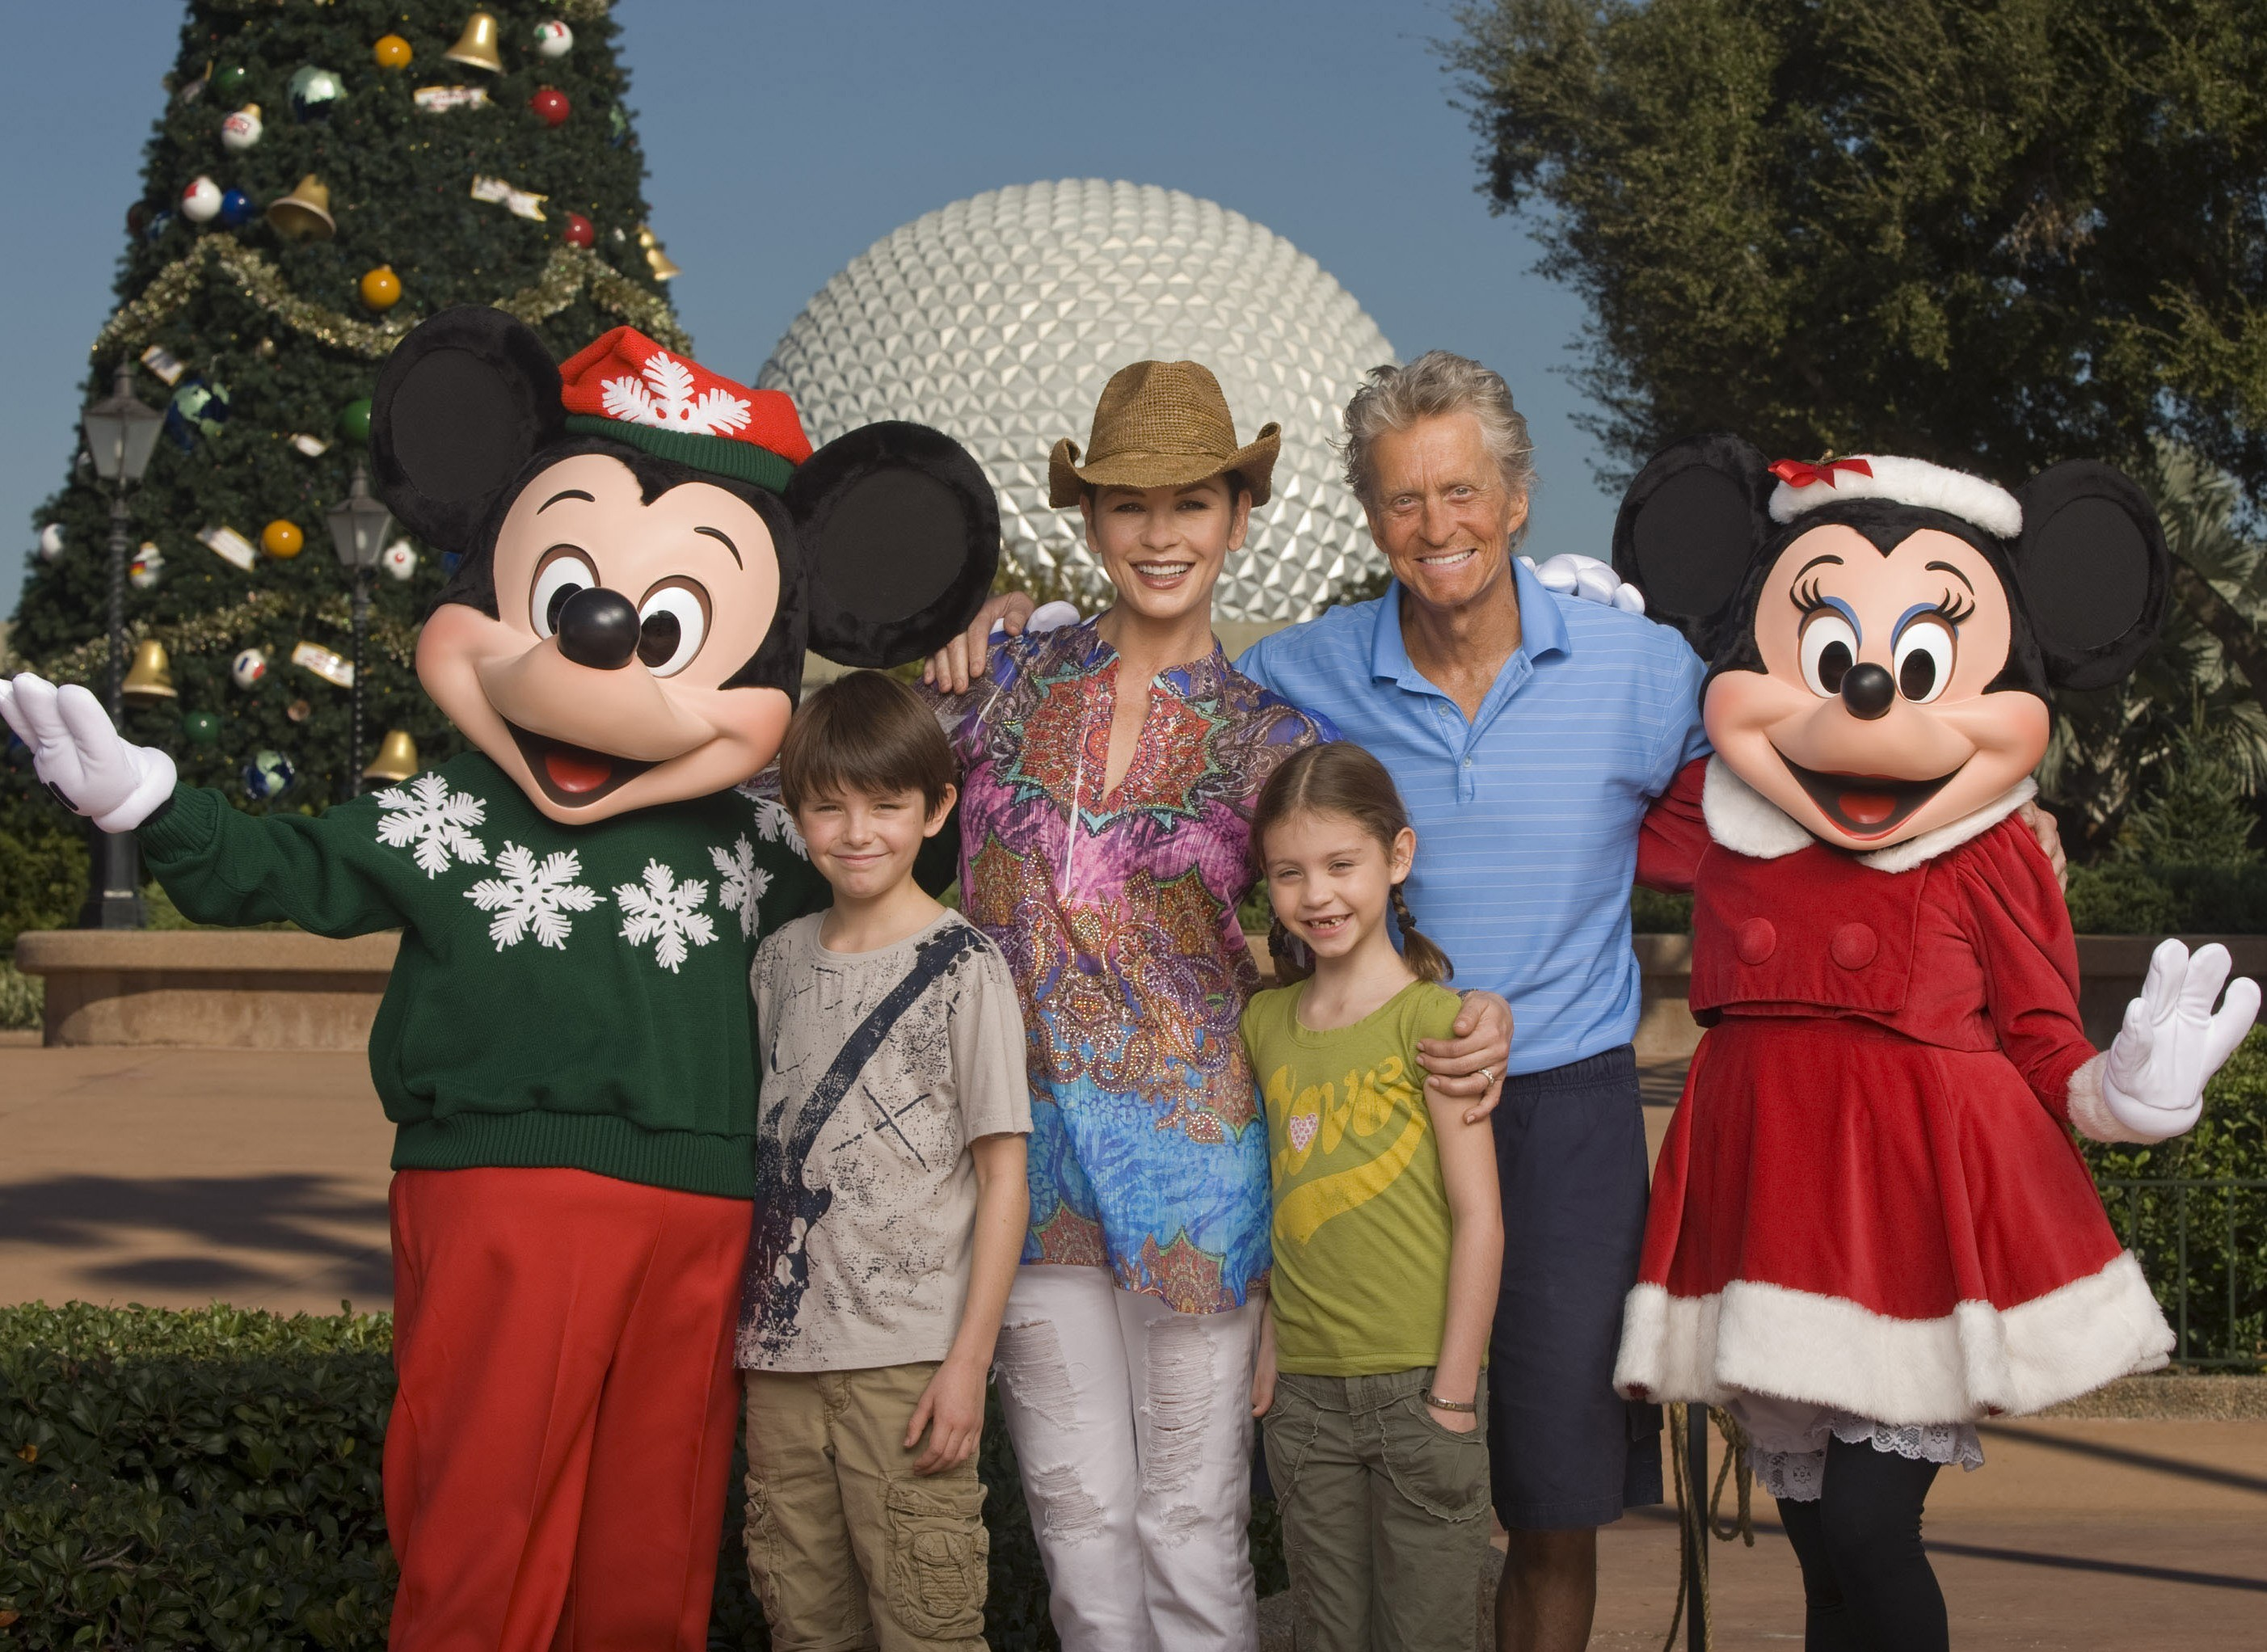 Michael Douglas and Catherine Zeta Jones family